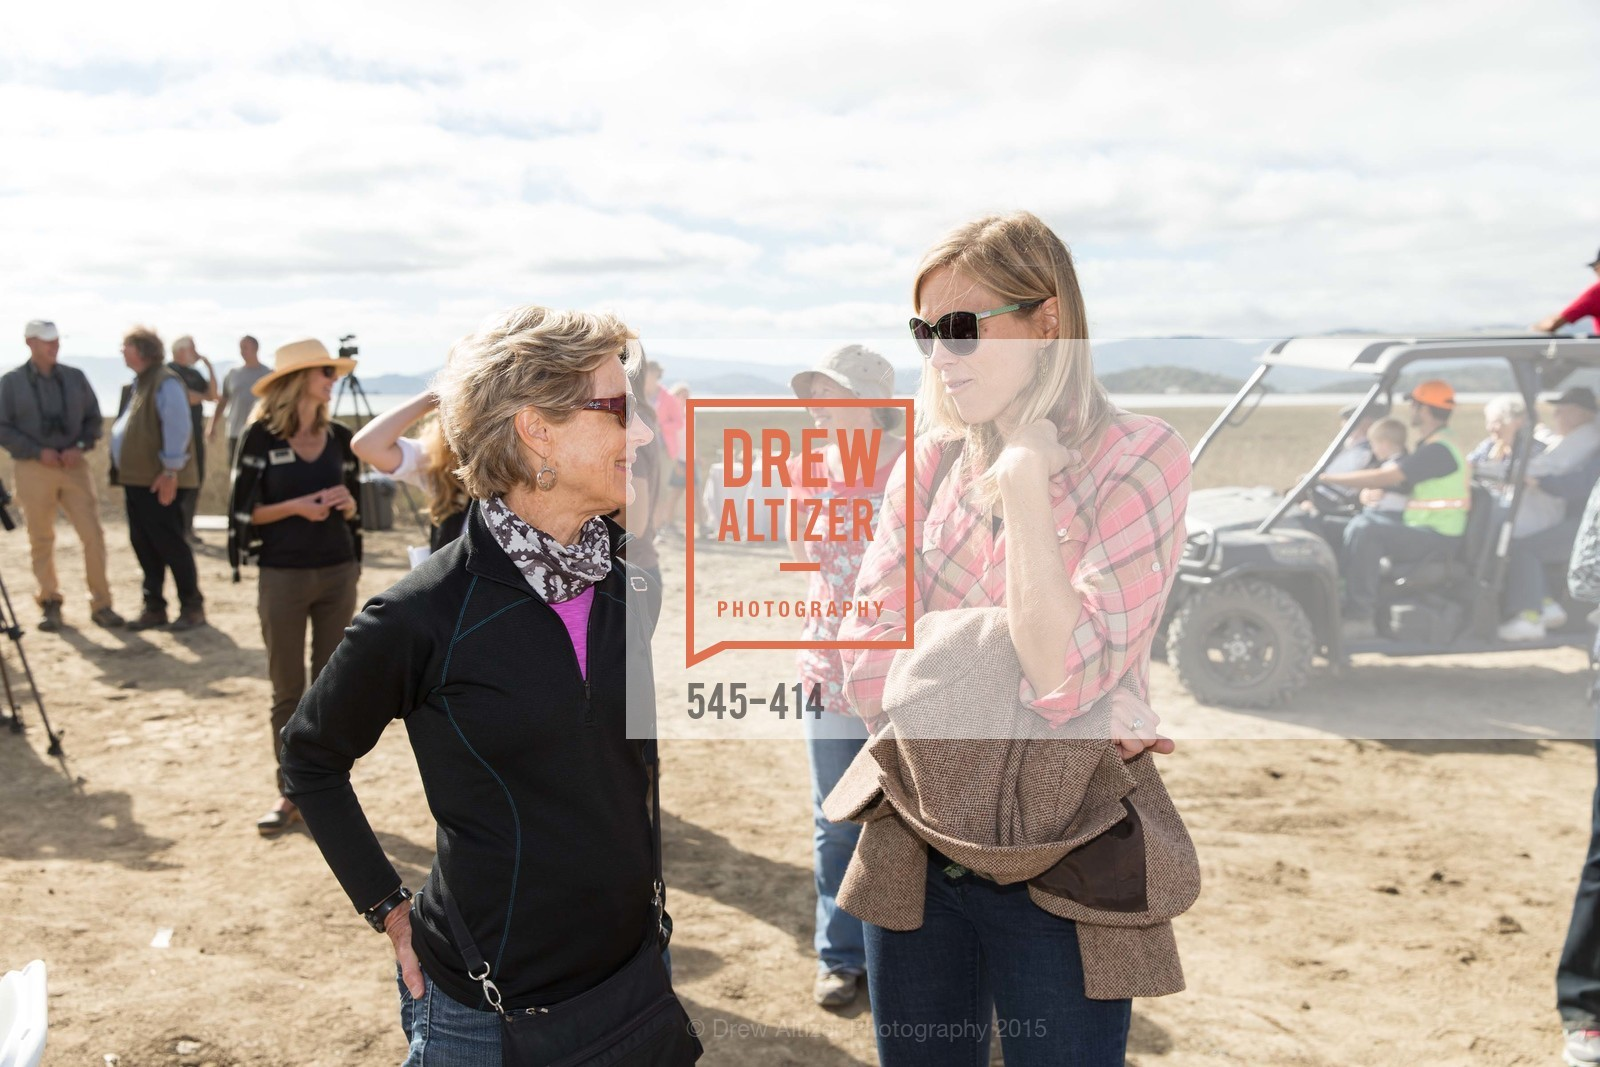 Leslie Everett, Trisha Meisler, SEA CHANGE at Sears Point with Sonoma Land Trust, Sears Point. Hwy 37 and Lakeville Hwy, October 25th, 2015